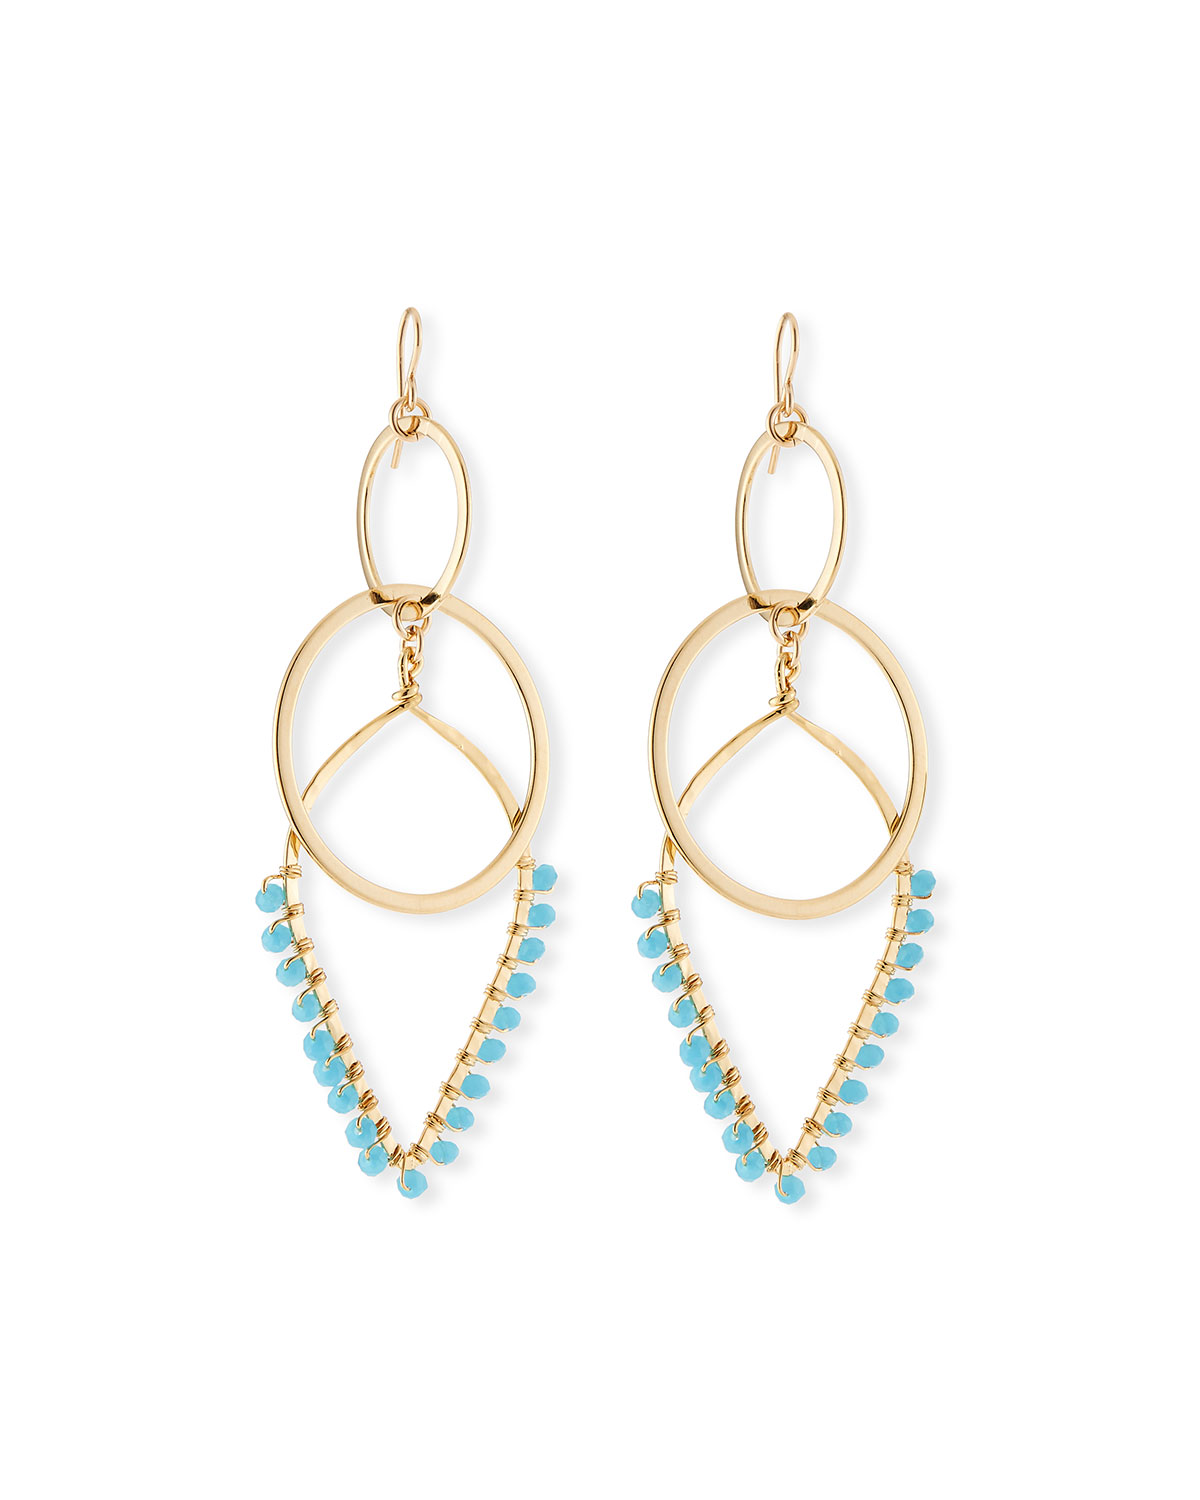 Devon Leigh Double-Link Teardrop Earrings eIshviDk